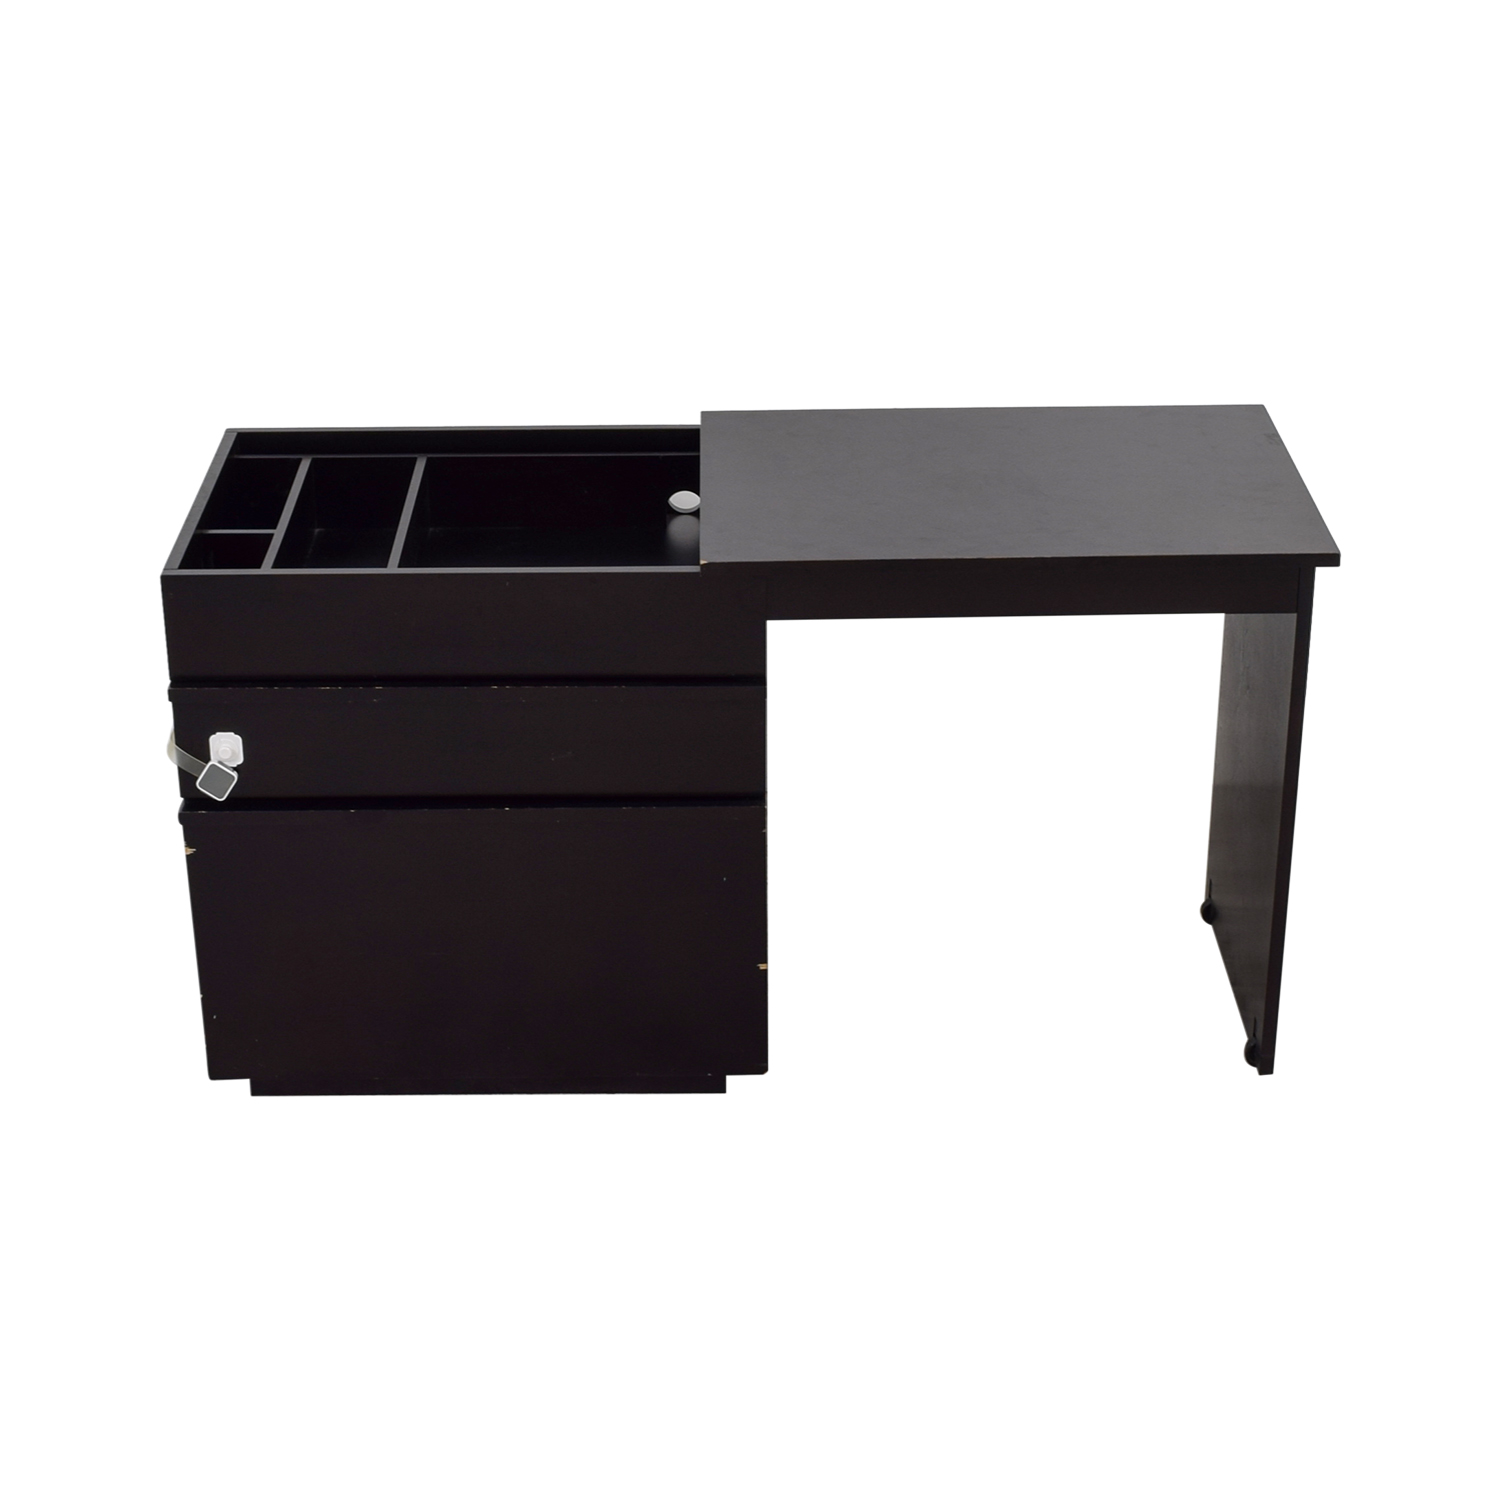 ... Shop Crate U0026 Barrel Convertible File Cabinet To Desk Crate U0026 Barrel  Home Office Desks ...